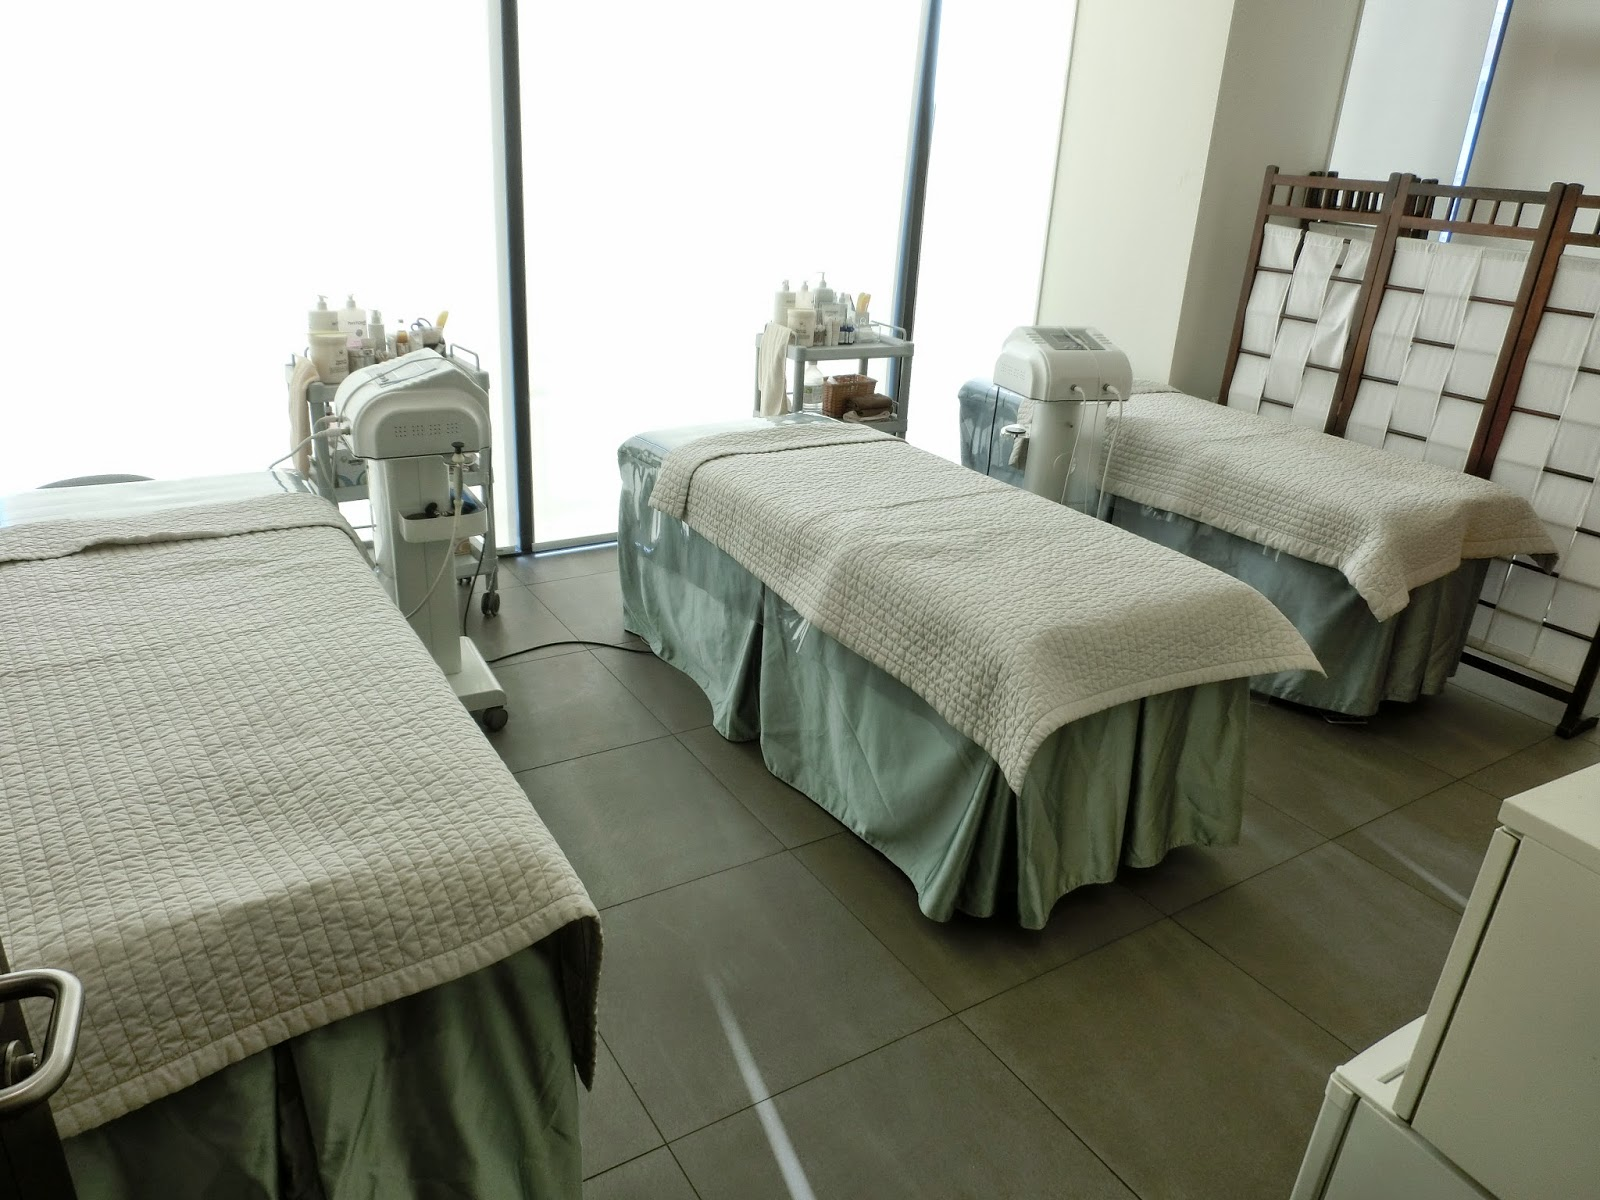 grand-post-op-care-centre-therapy-room